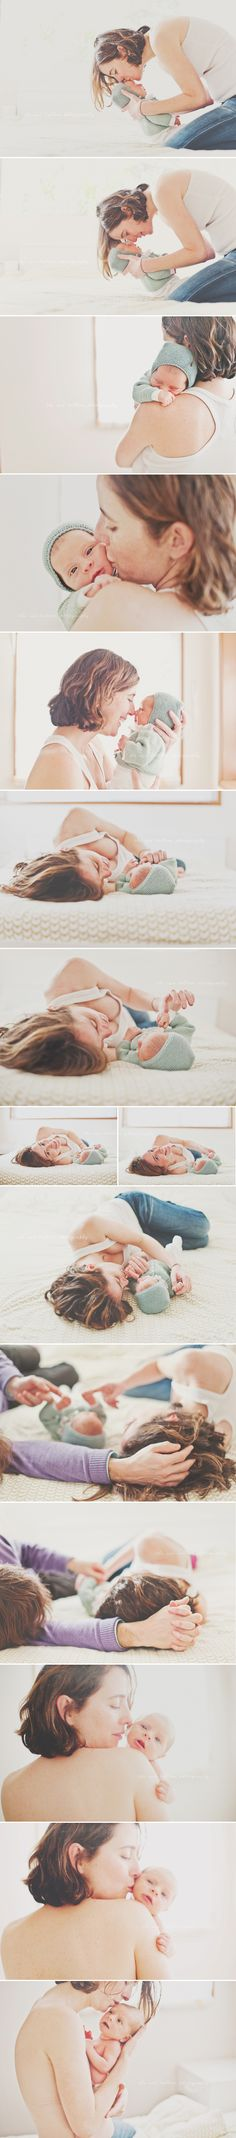 i love how @Valeria Spring always captures the sweet everyday moments :)